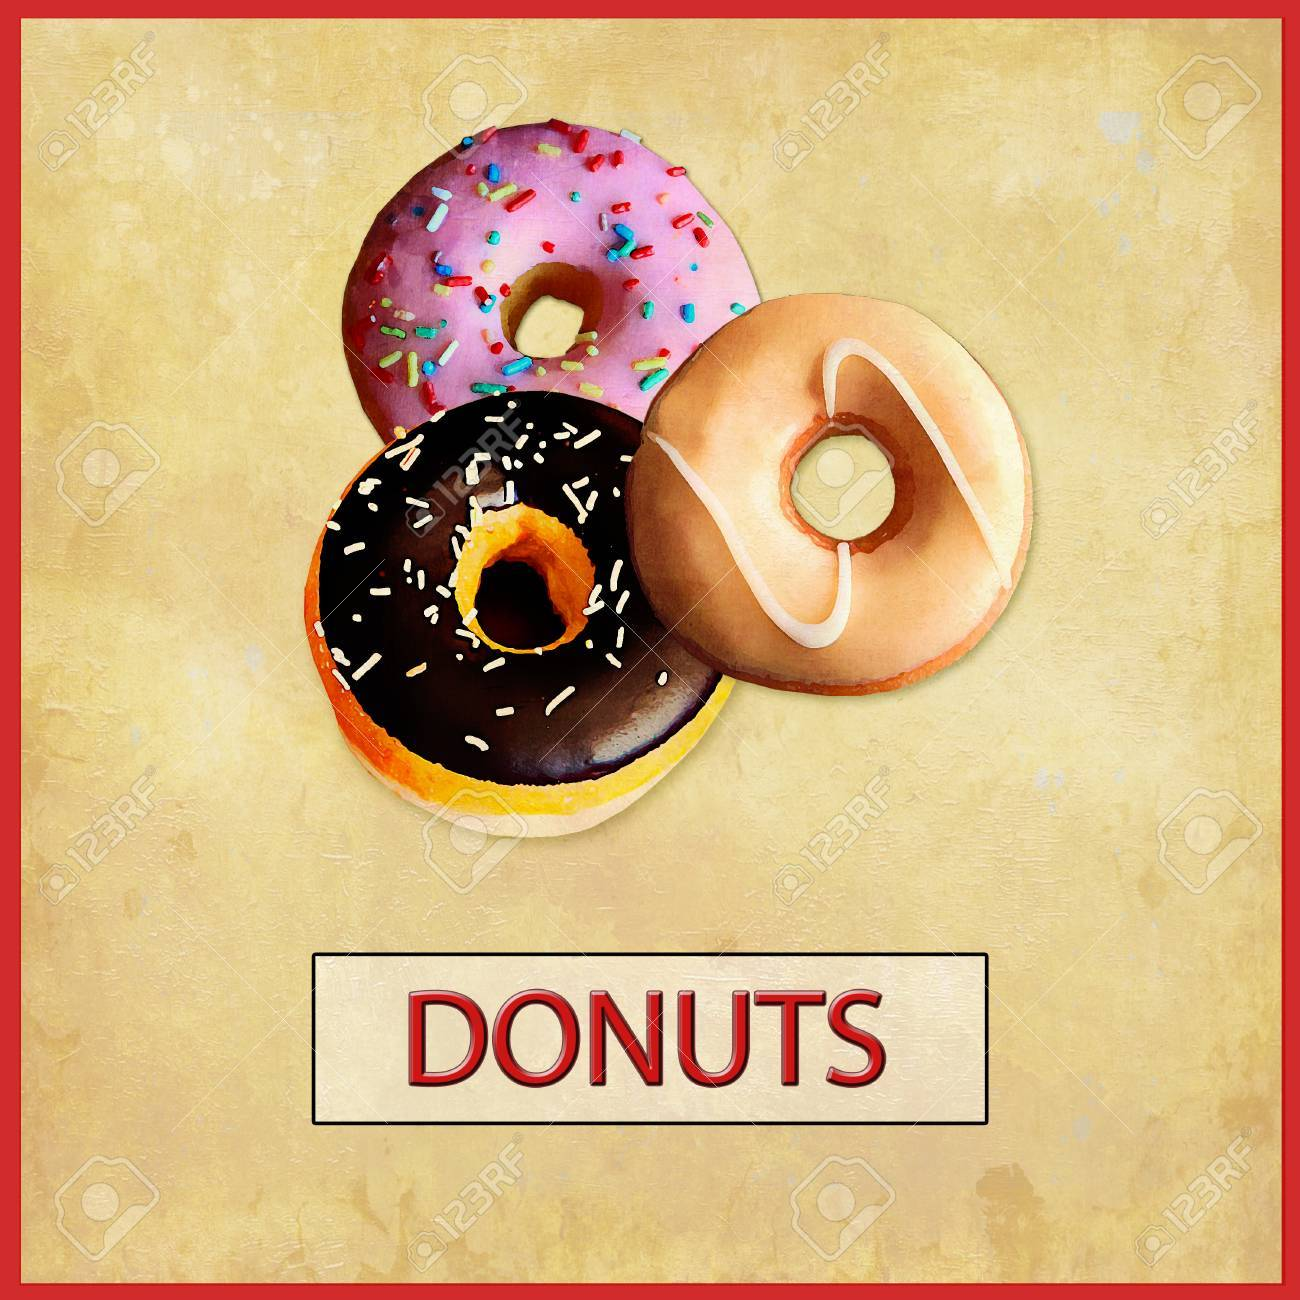 Doughnuts with glazed cream, chocolate and sugar sprinkes, placard  with grunge old-fashioned effects Stock Photo - 73541356